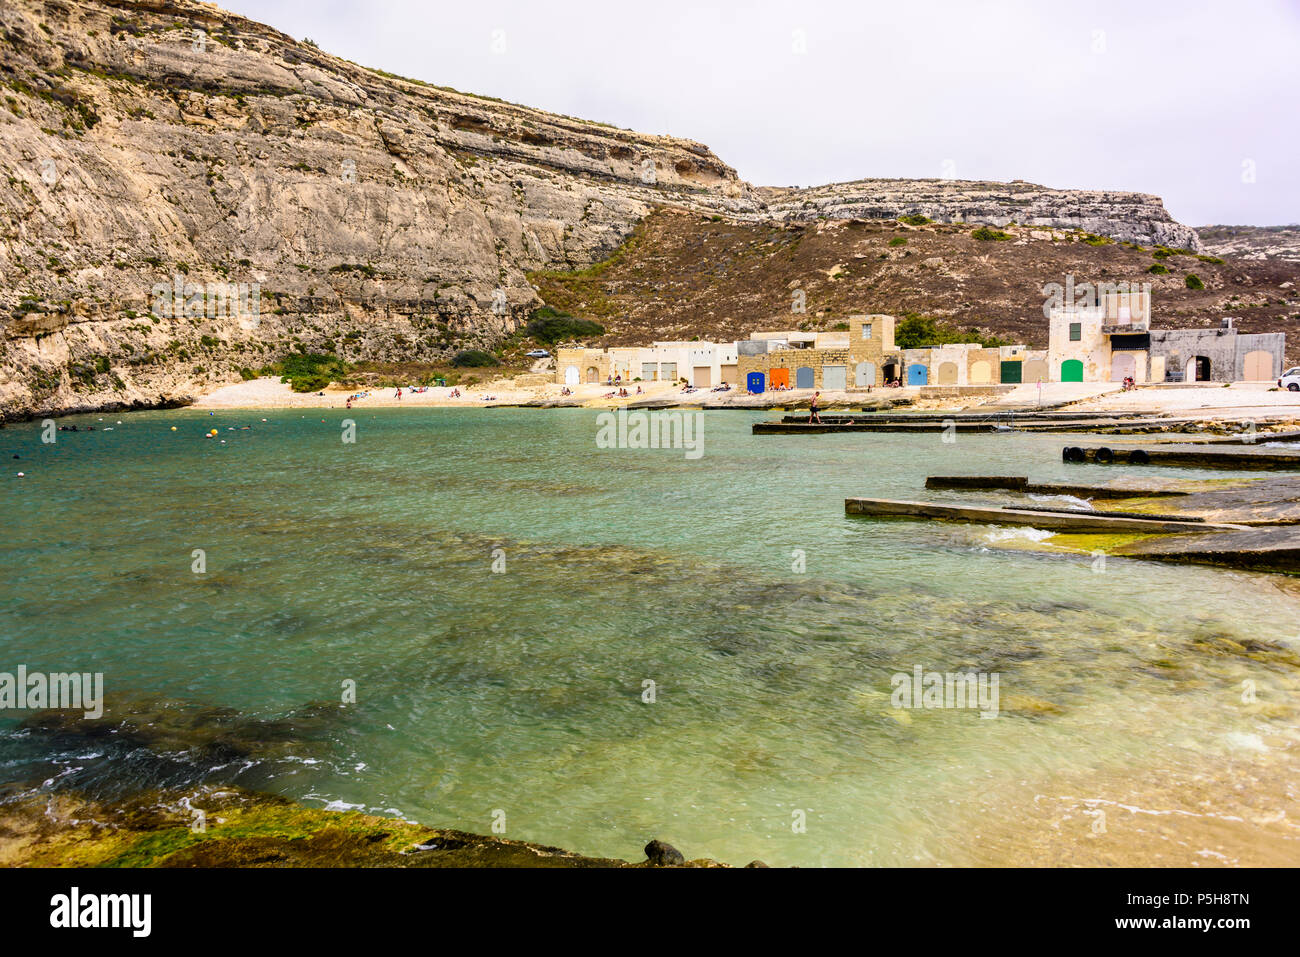 Colourful boat houses at Dwerja, the inland sea, Gozo, Malta. Stock Photo